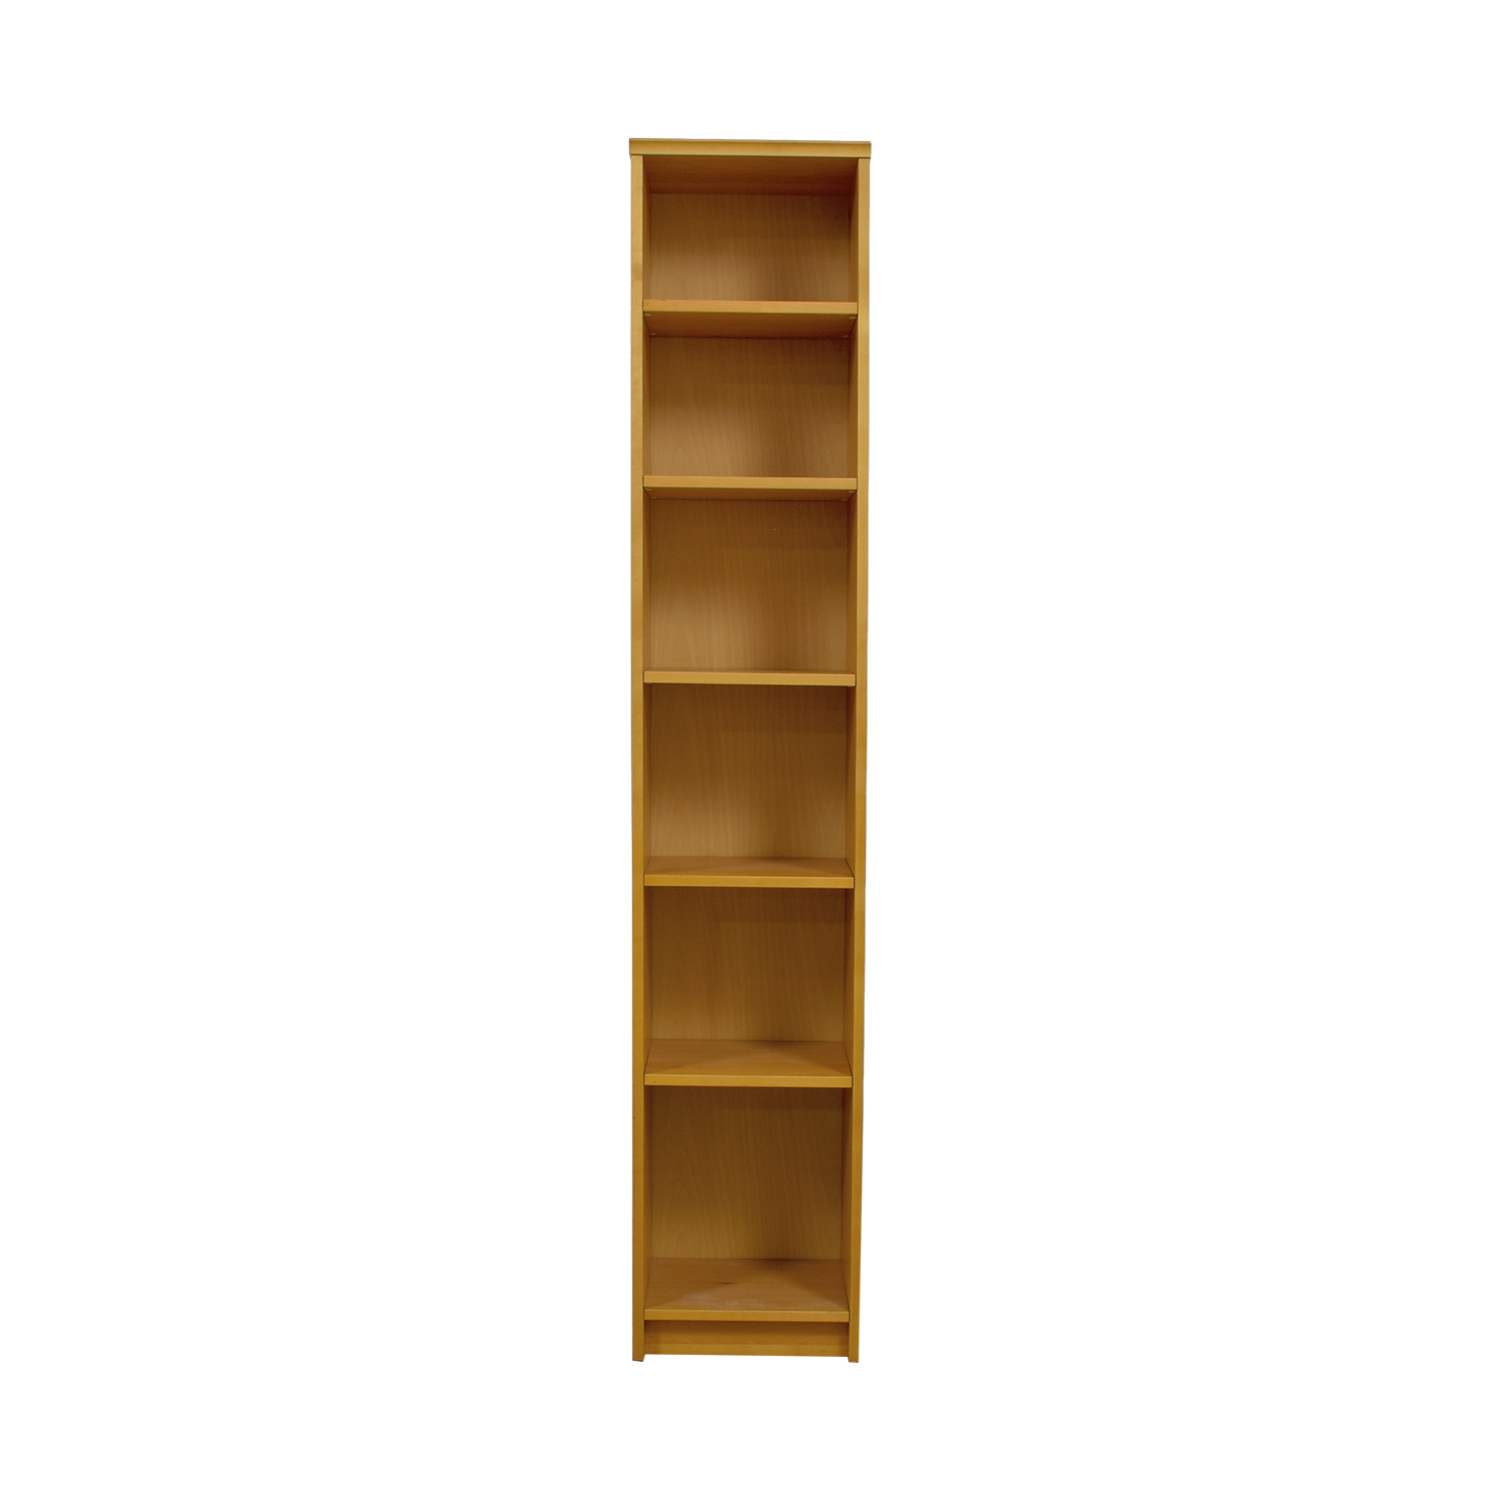 Tall Wood Bookshelf